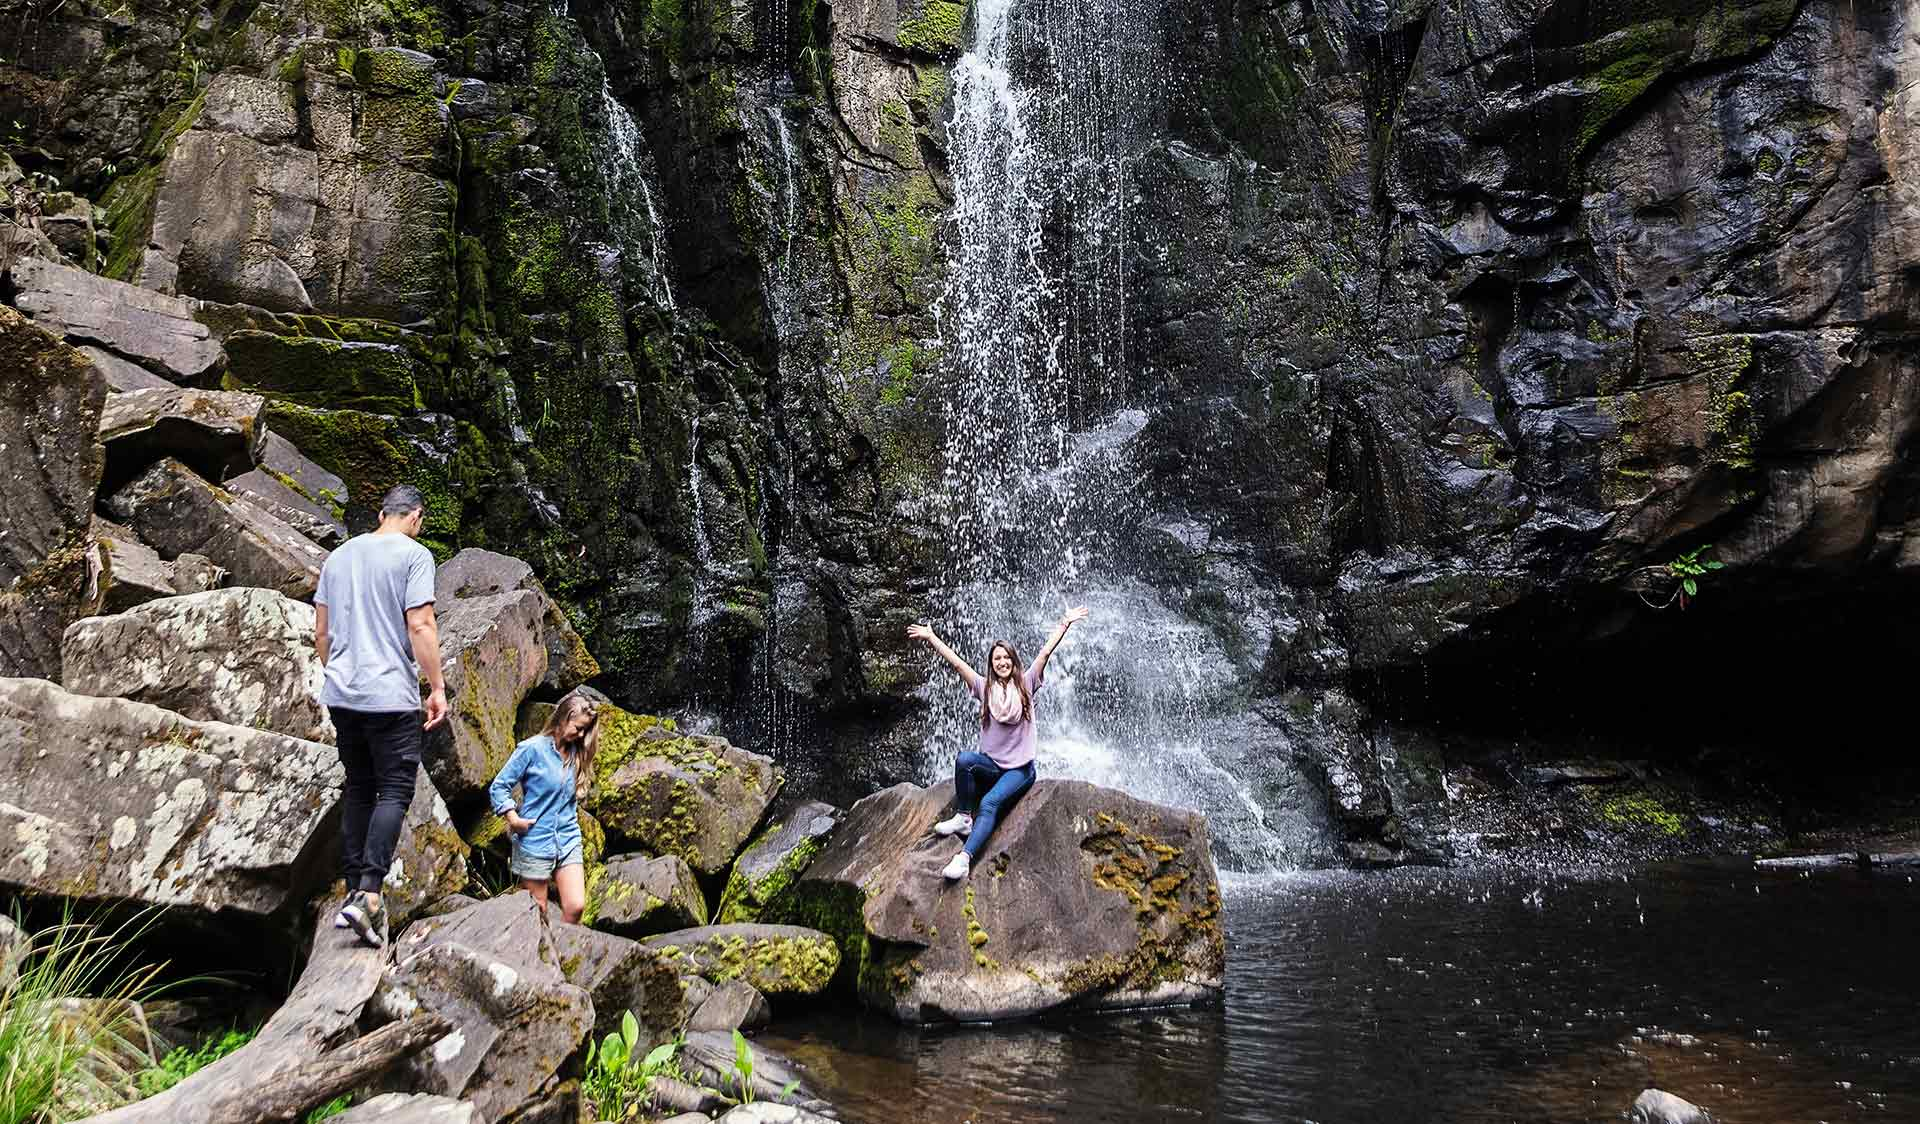 A women sitting on a rock in front of a waterfall calls out to her friends to join her.